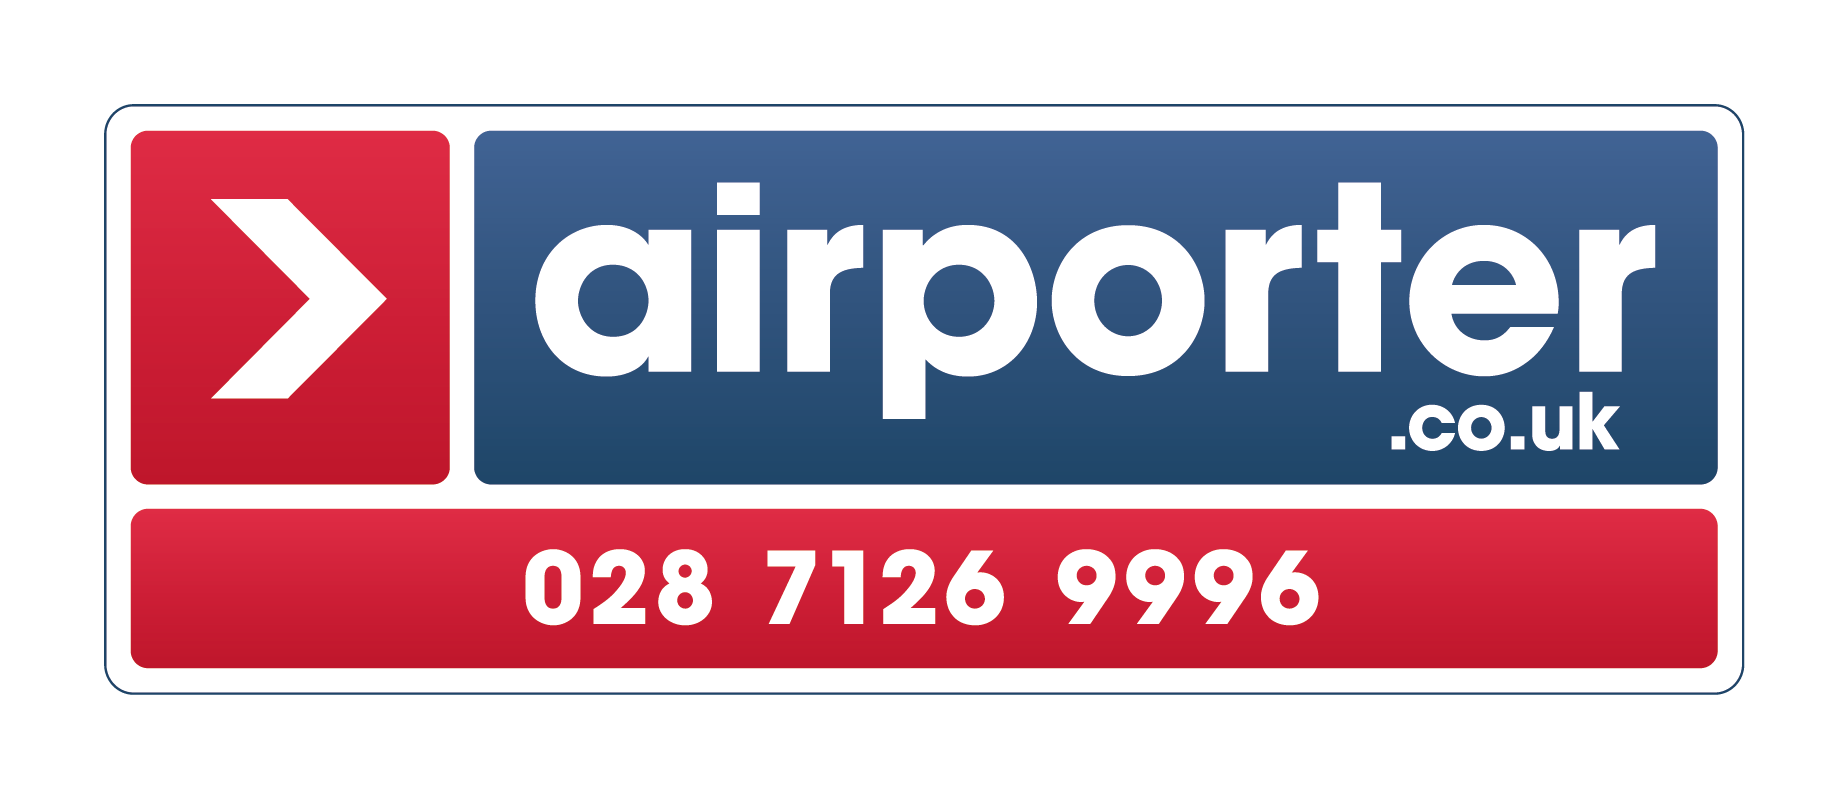 Airporter - the bus to the